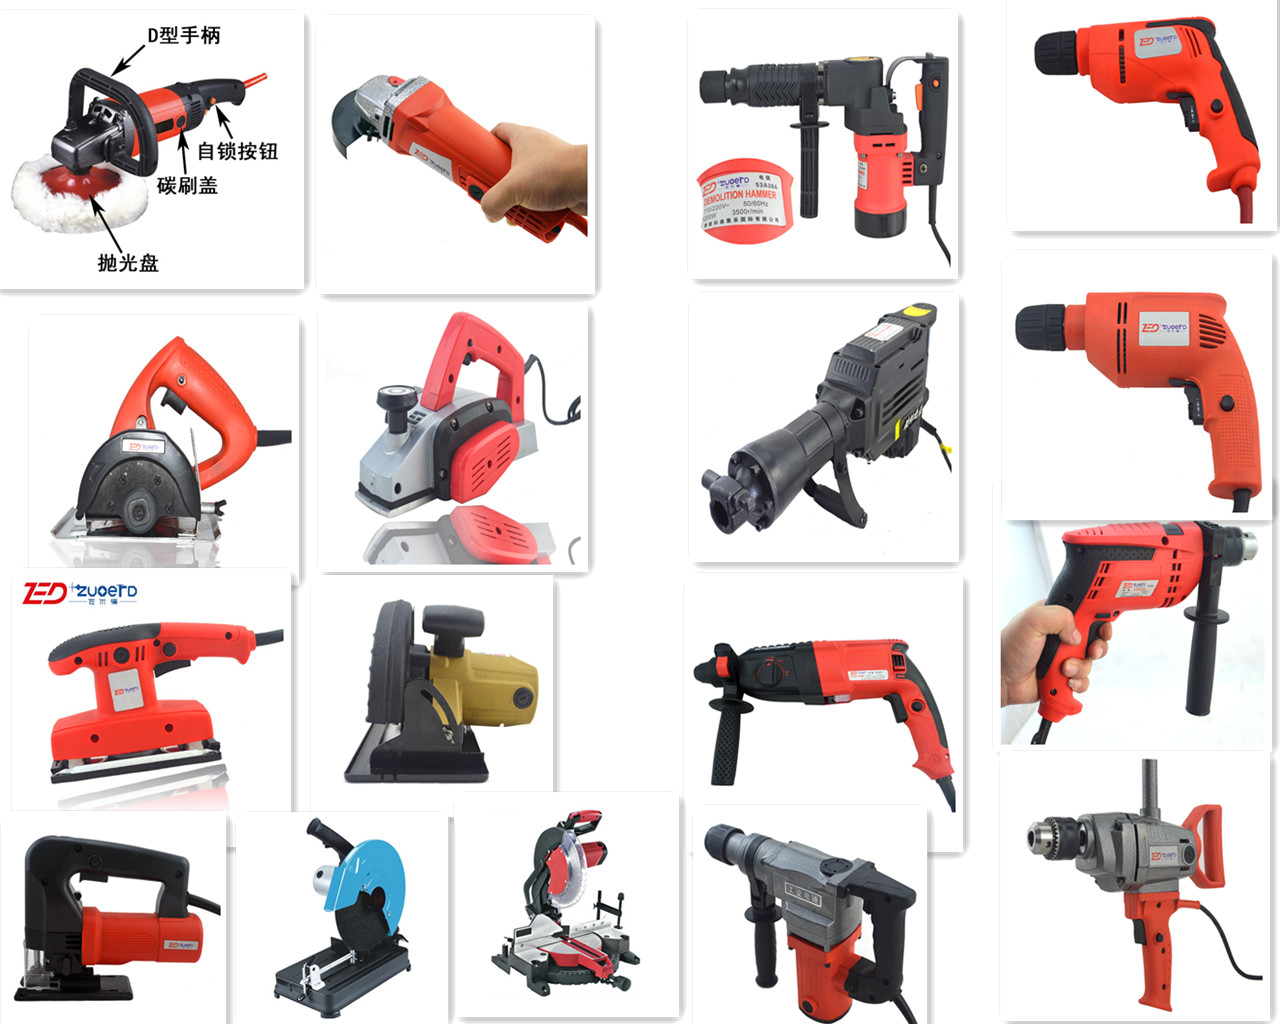 hand tools electric power tools: 070815